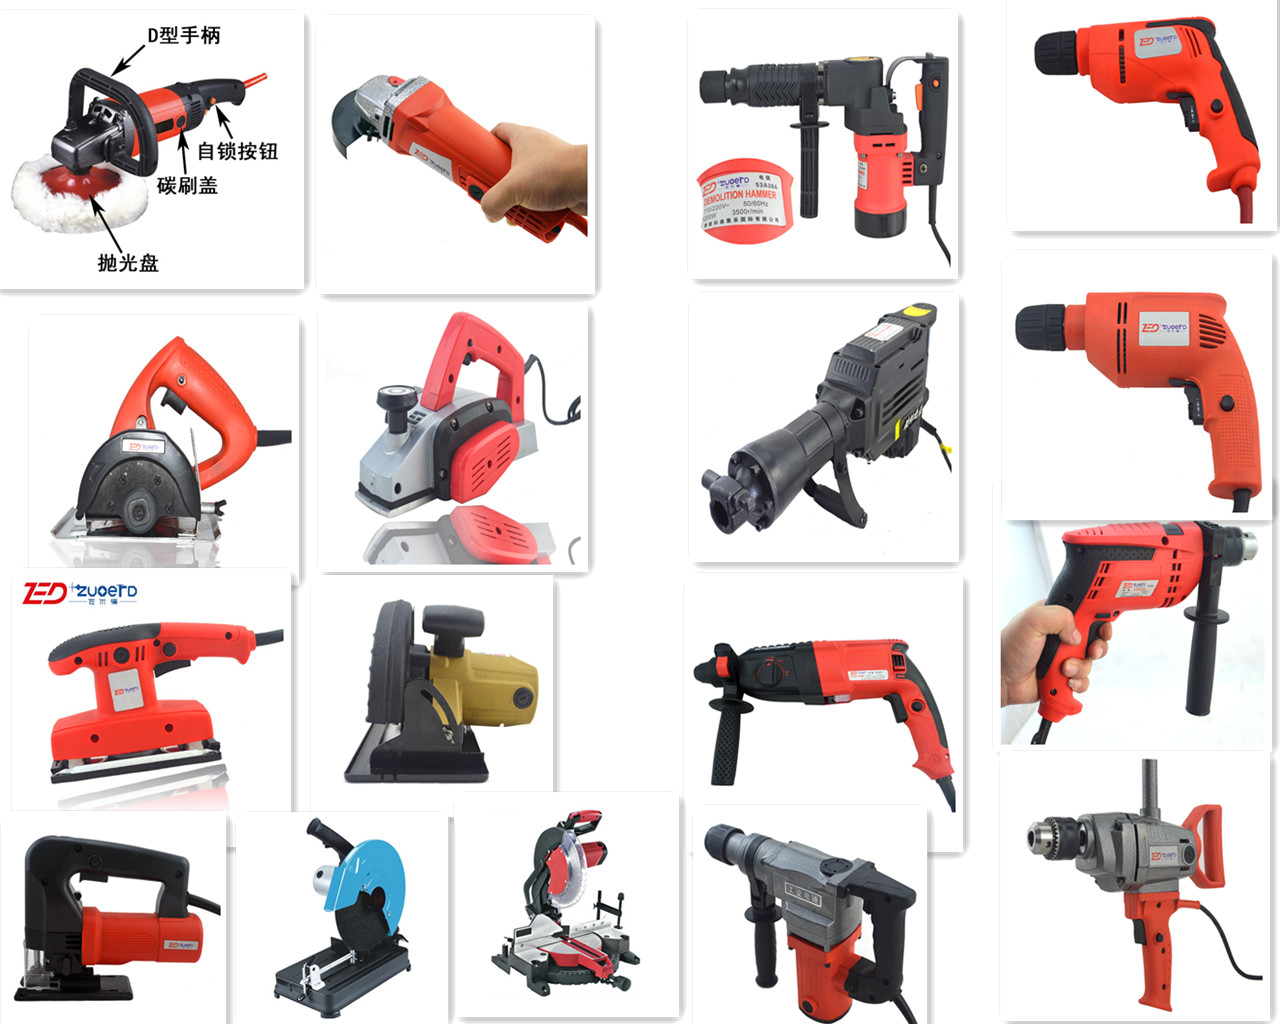 hand tools electric power tools: 070815